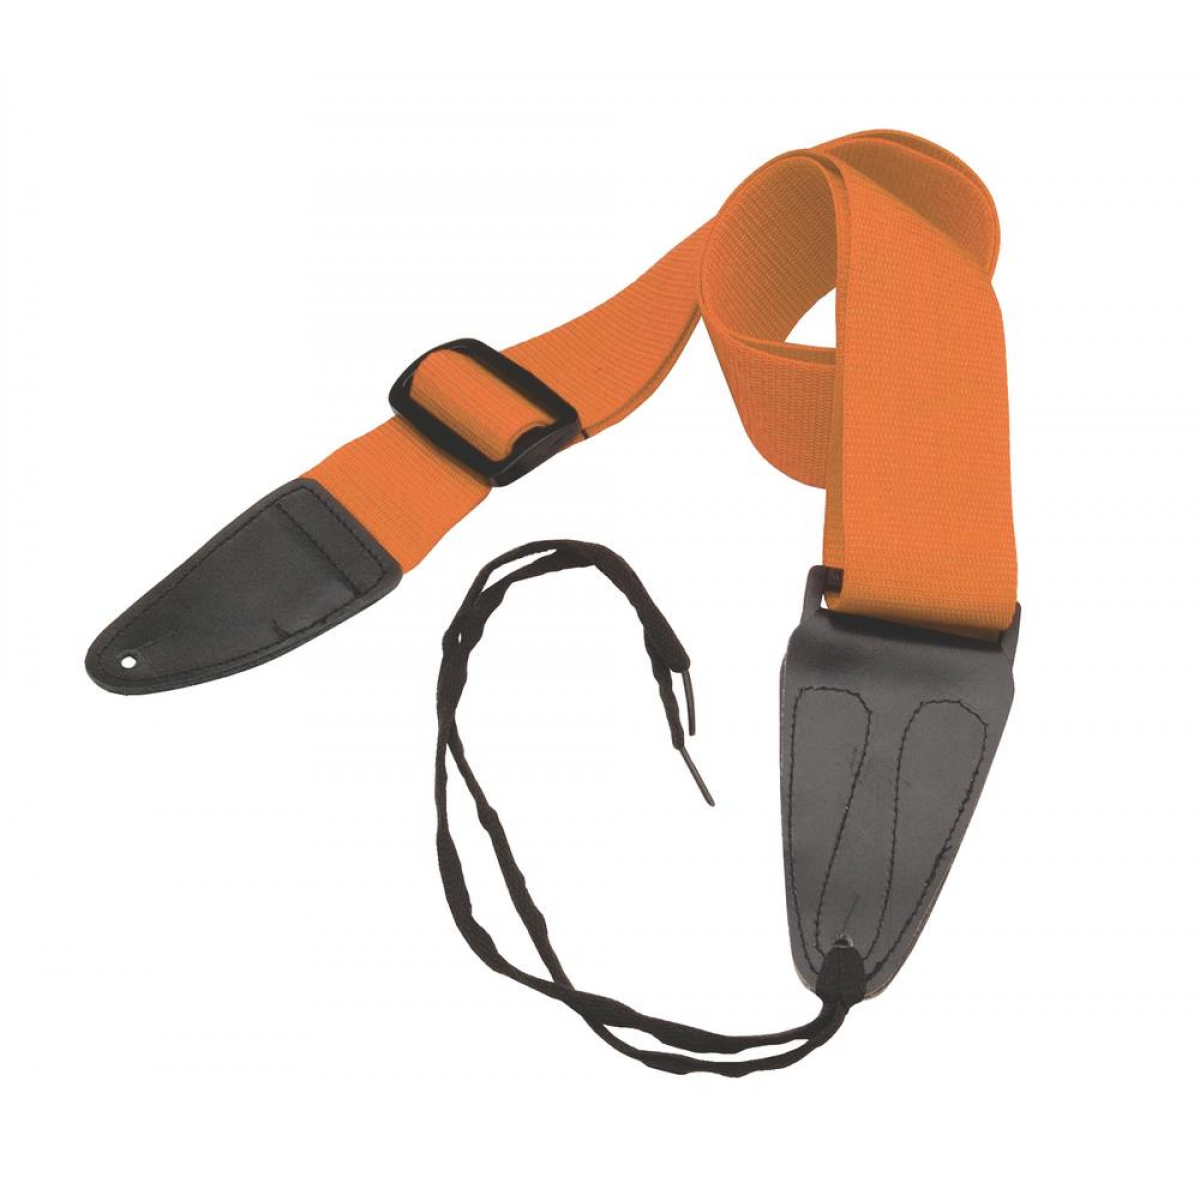 On-Stage GSA10OR Guitar Strap with Leather Ends (Orange)